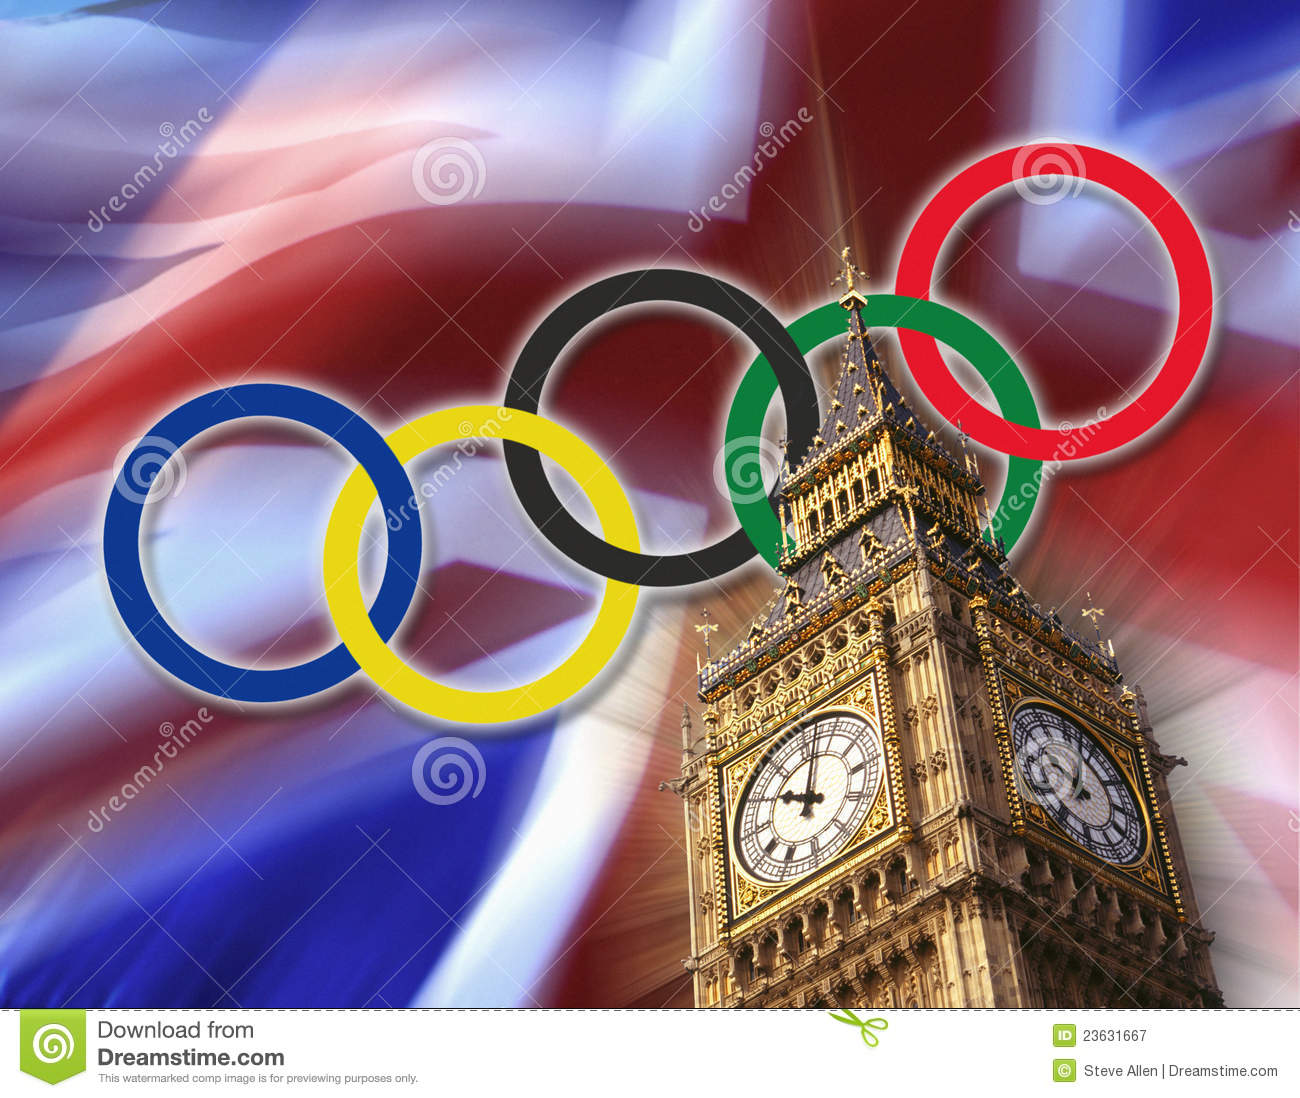 london 2012 olympics case Case study: the london 2012 olympic games 1 what are the tradeoffs that williamson faces the tradeoffs williamson faces are numerous, for example, hitting the ticket.